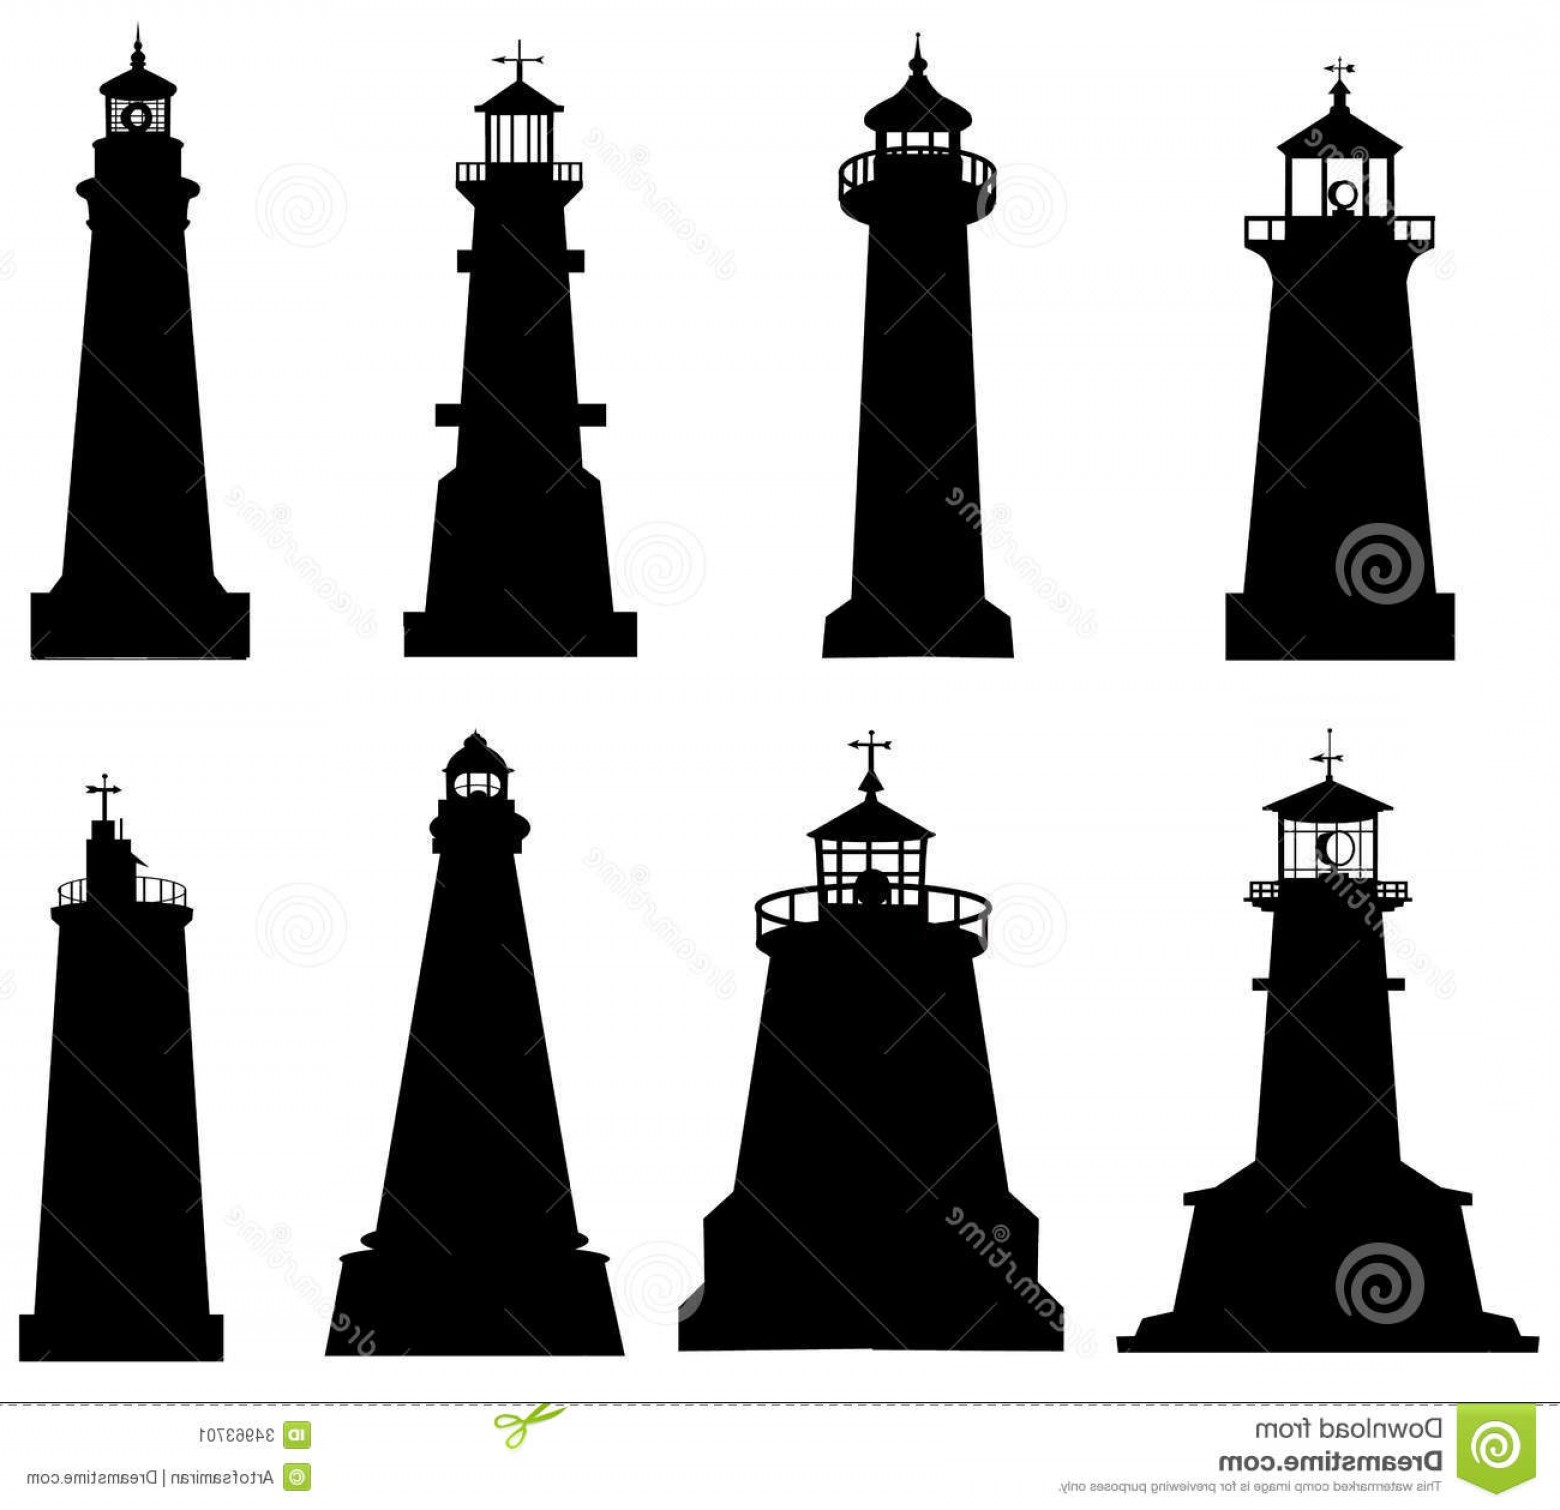 Jupiter Lighthouse Vector: Stock Image Lighthouse Silhouette Set Illustration Image